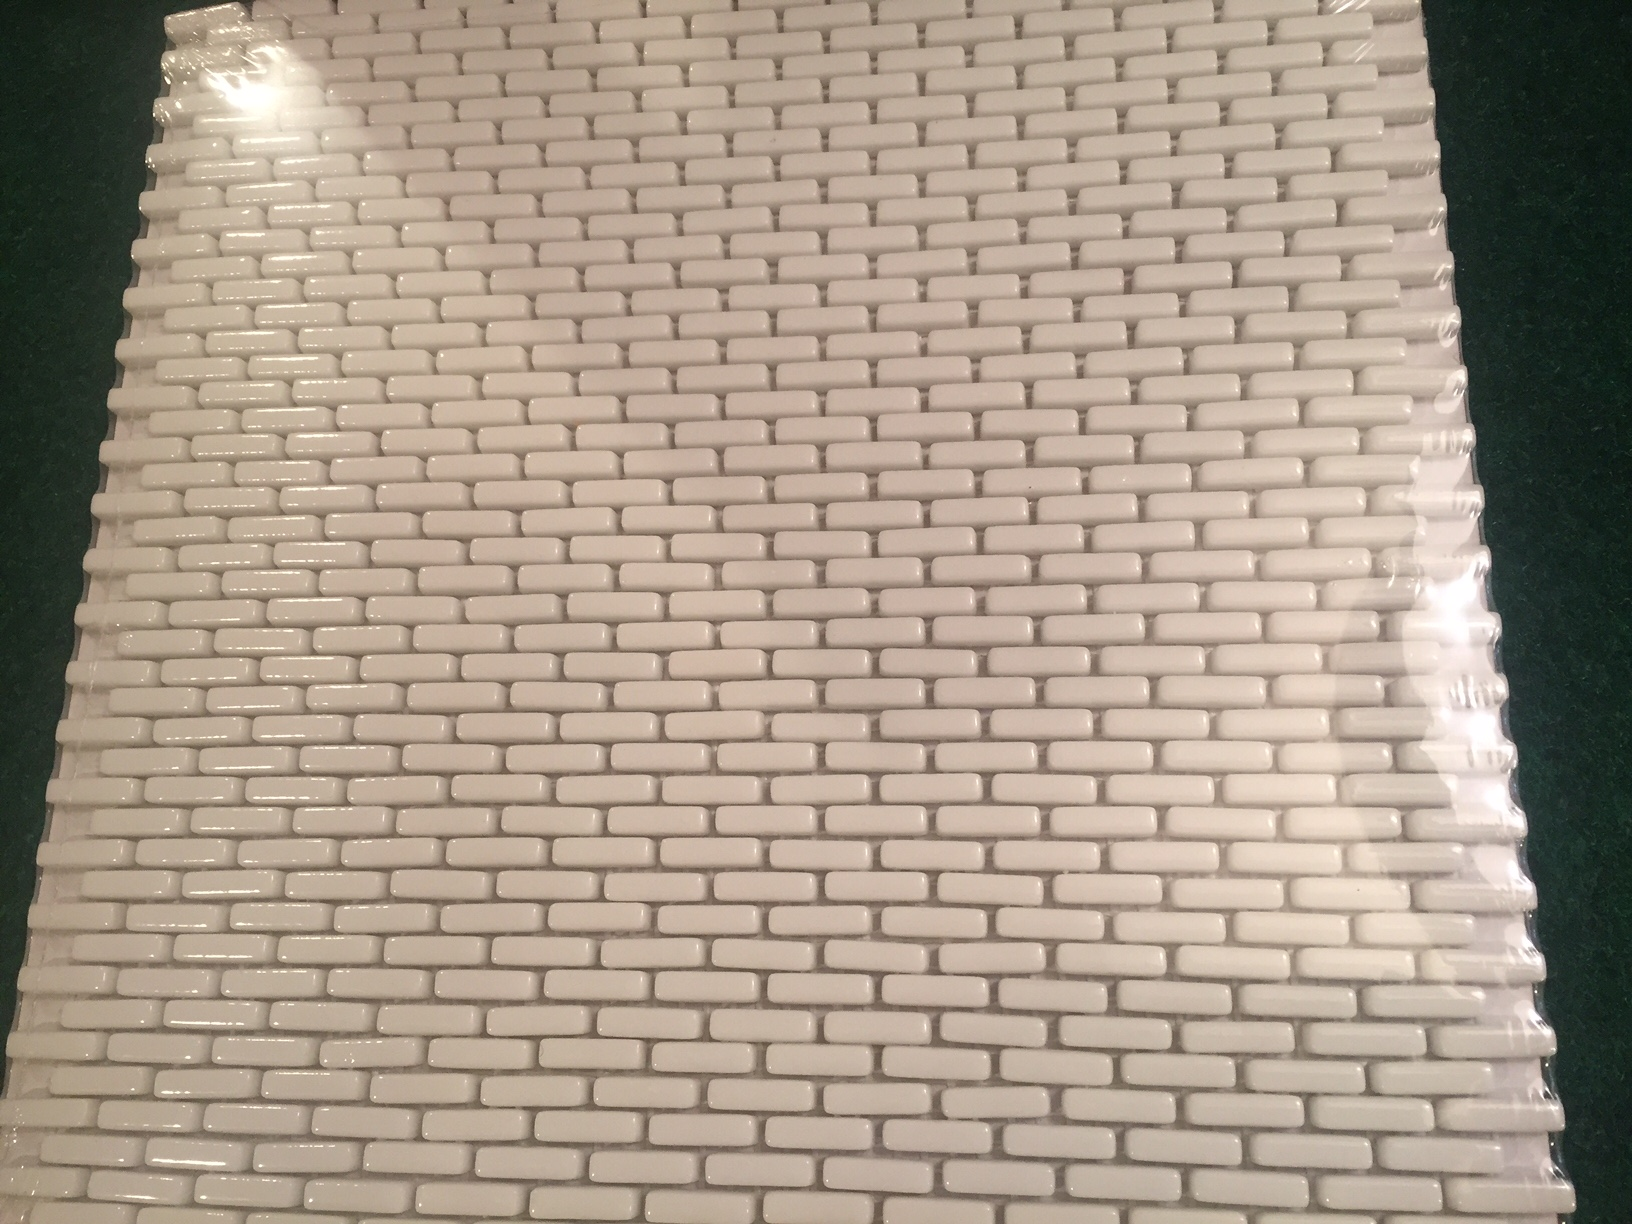 Mini Subway Tile at Lowes - General Mini Talk - The Greenleaf